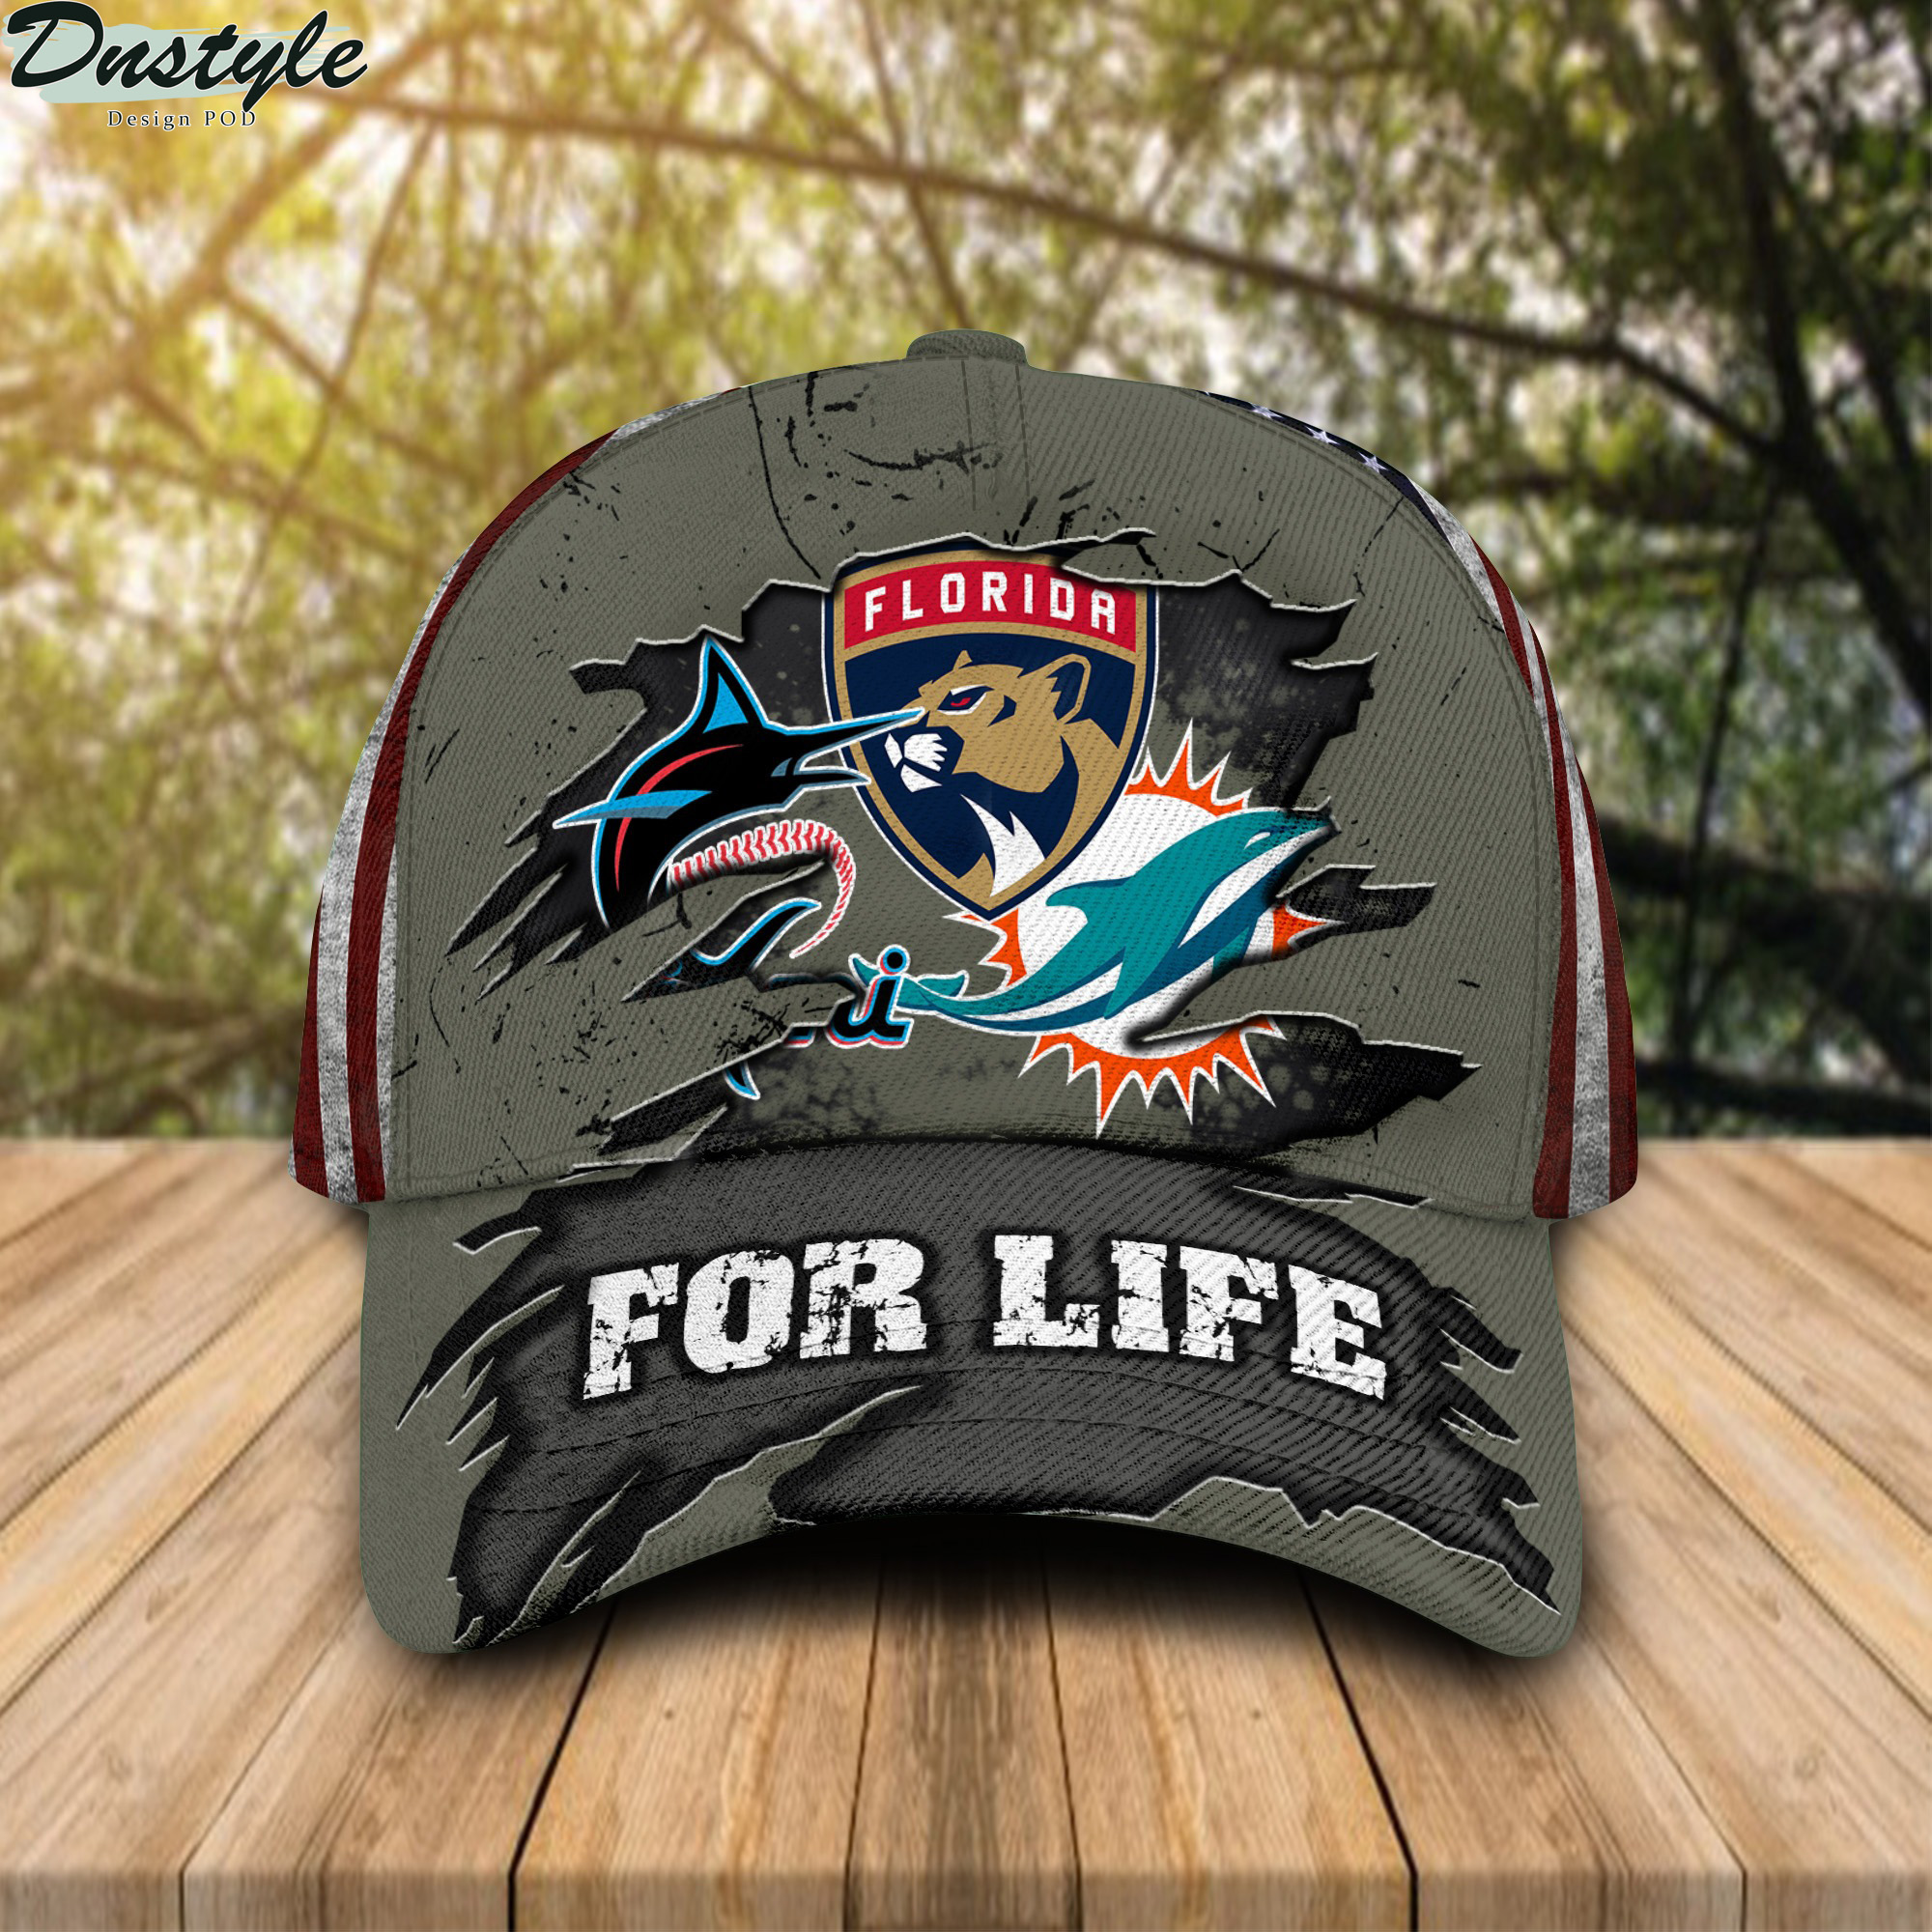 Miami Dolphins Miami Marlins Florida Panthers For Life Cap